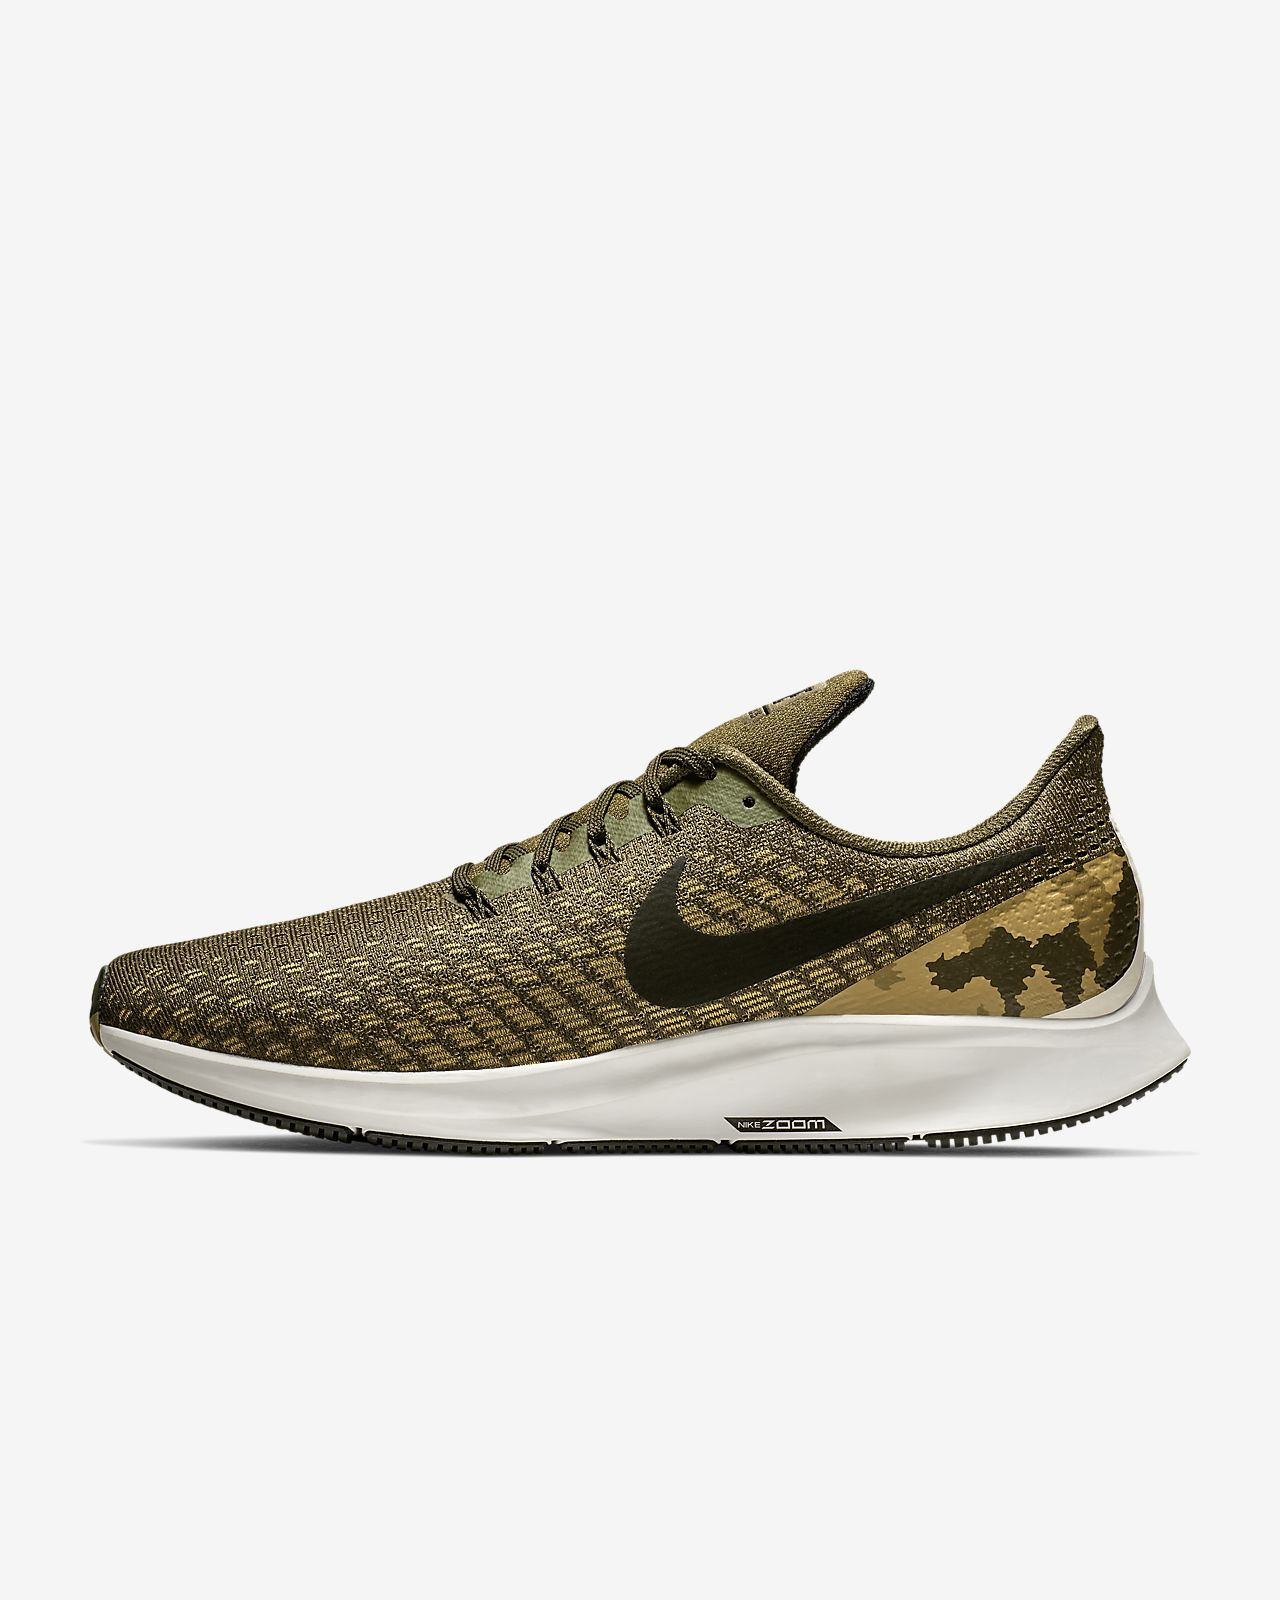 Nike Air Zoom Pegasus 35 Men's Camo Running Shoe